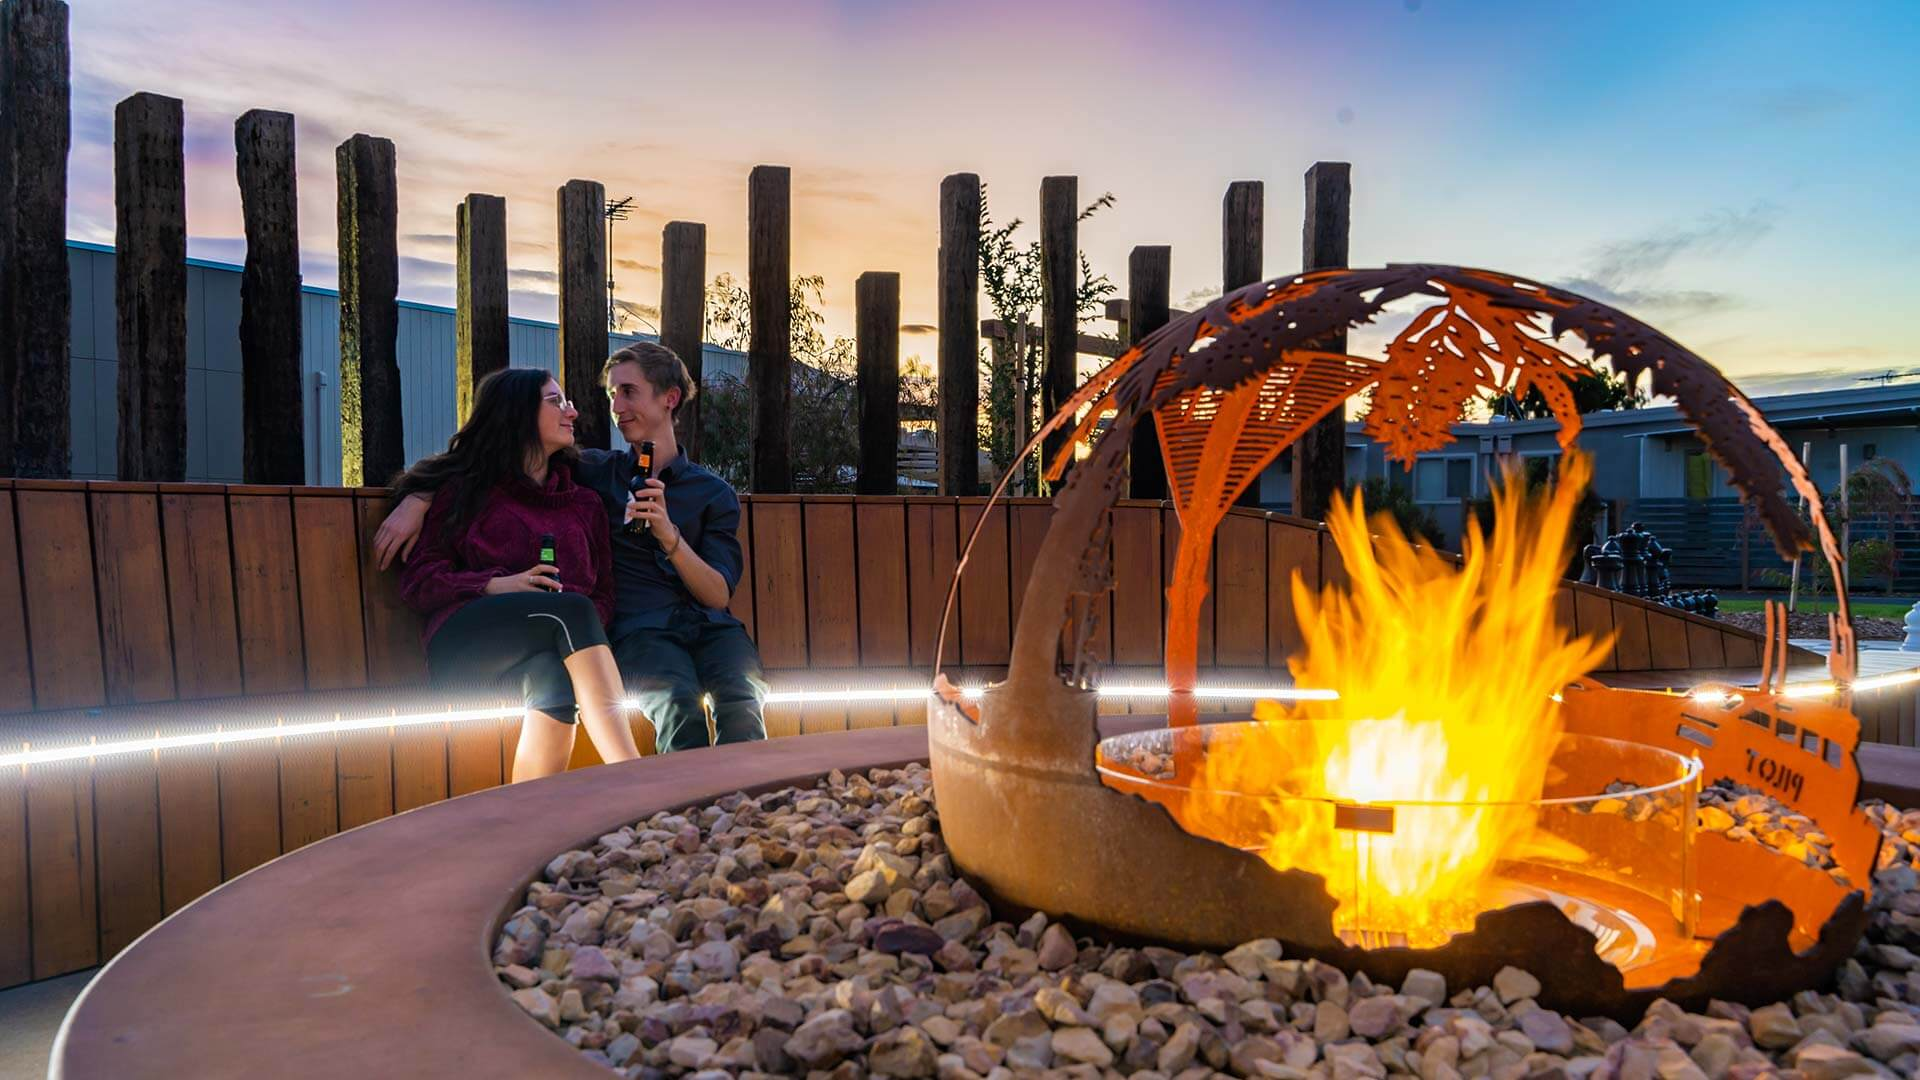 Firepit at BIG4 Beacon Resort